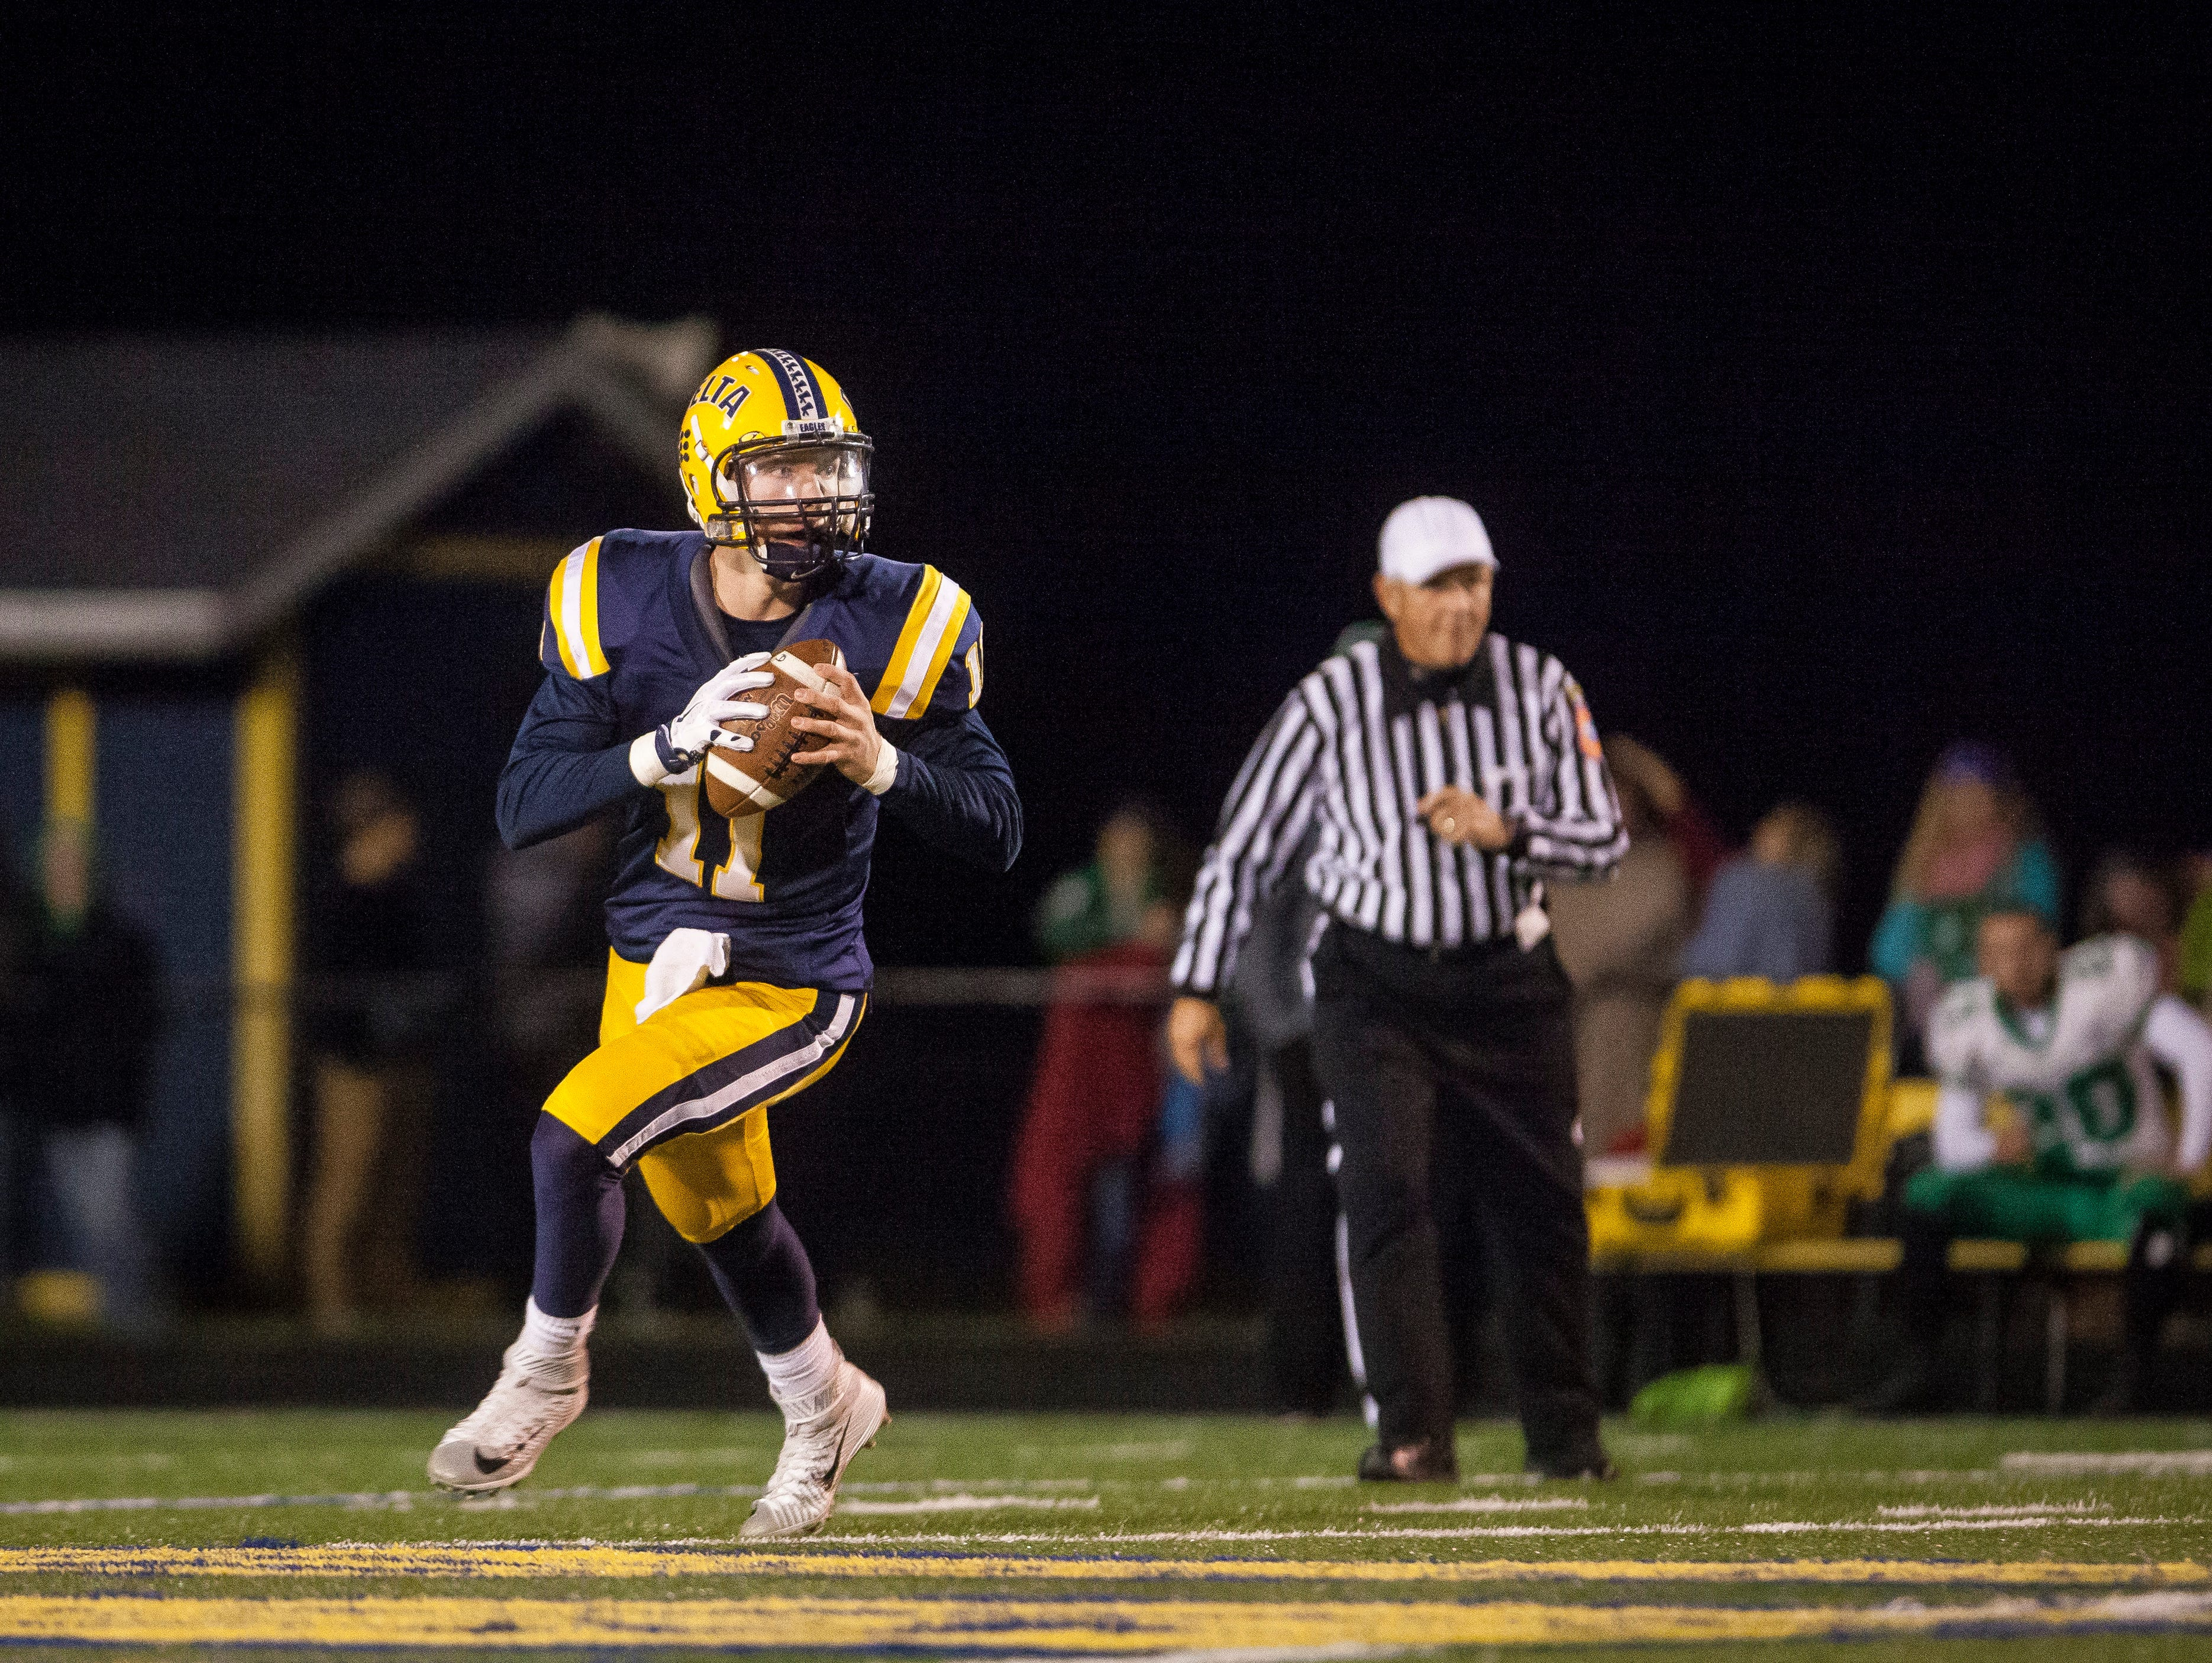 Delta won against New Castle Friday night with a final score of 49-7.